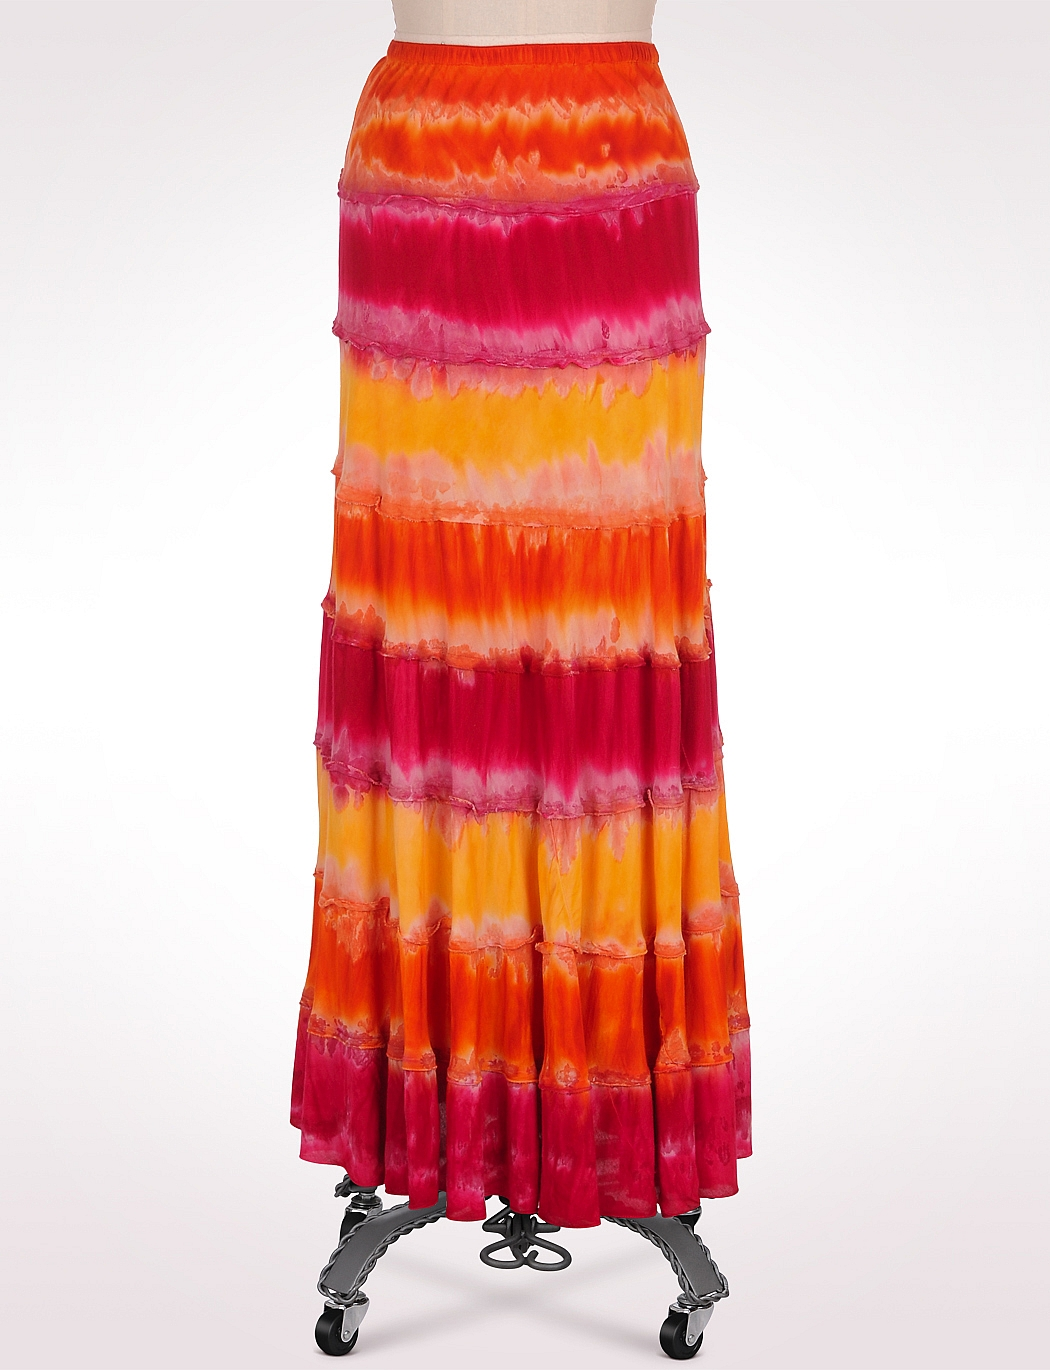 Colorful Cotton Fashion Skirt, Sunshine Tie-Dye Maxi Skirt